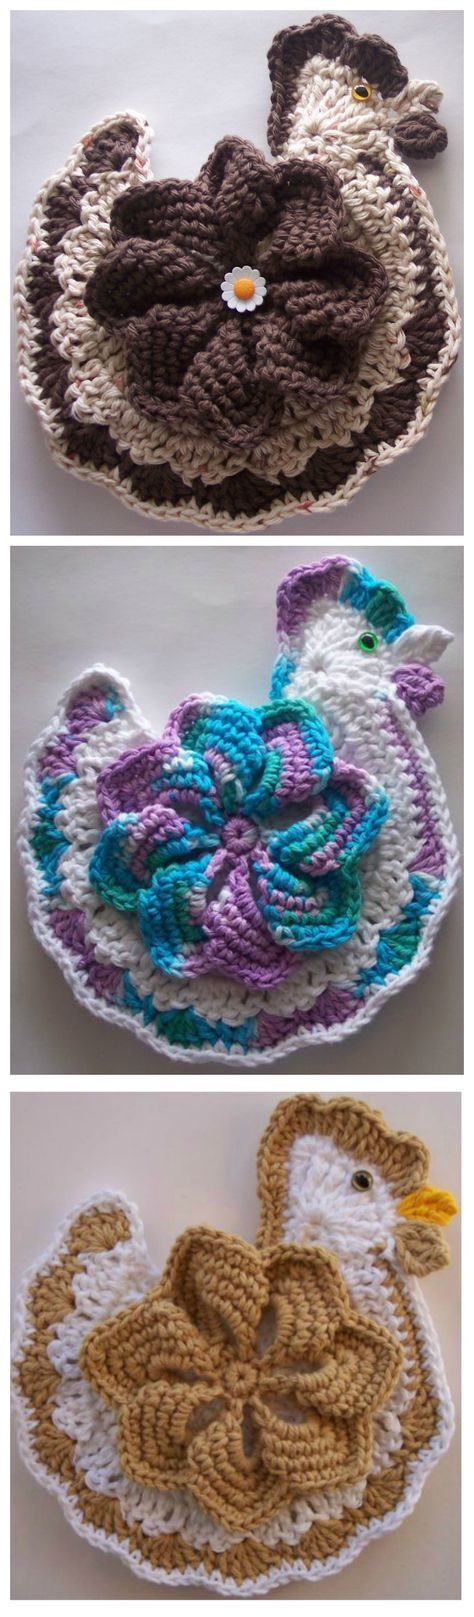 Crochet Chicken Potholder